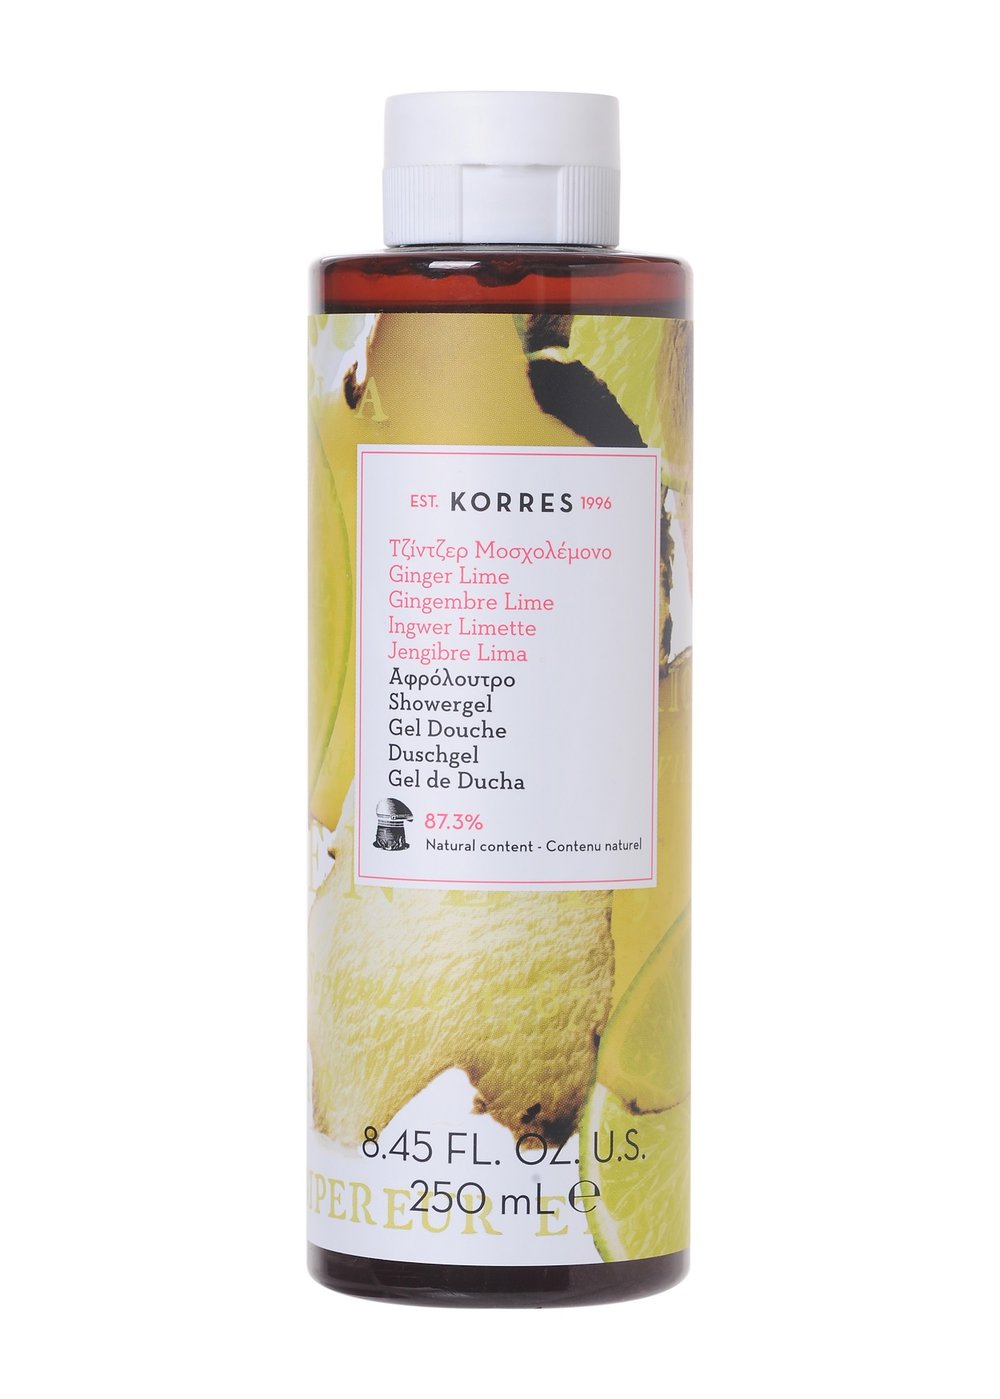 KORRES NEW! Ginger Lime Shower Gel jpeg.jpg